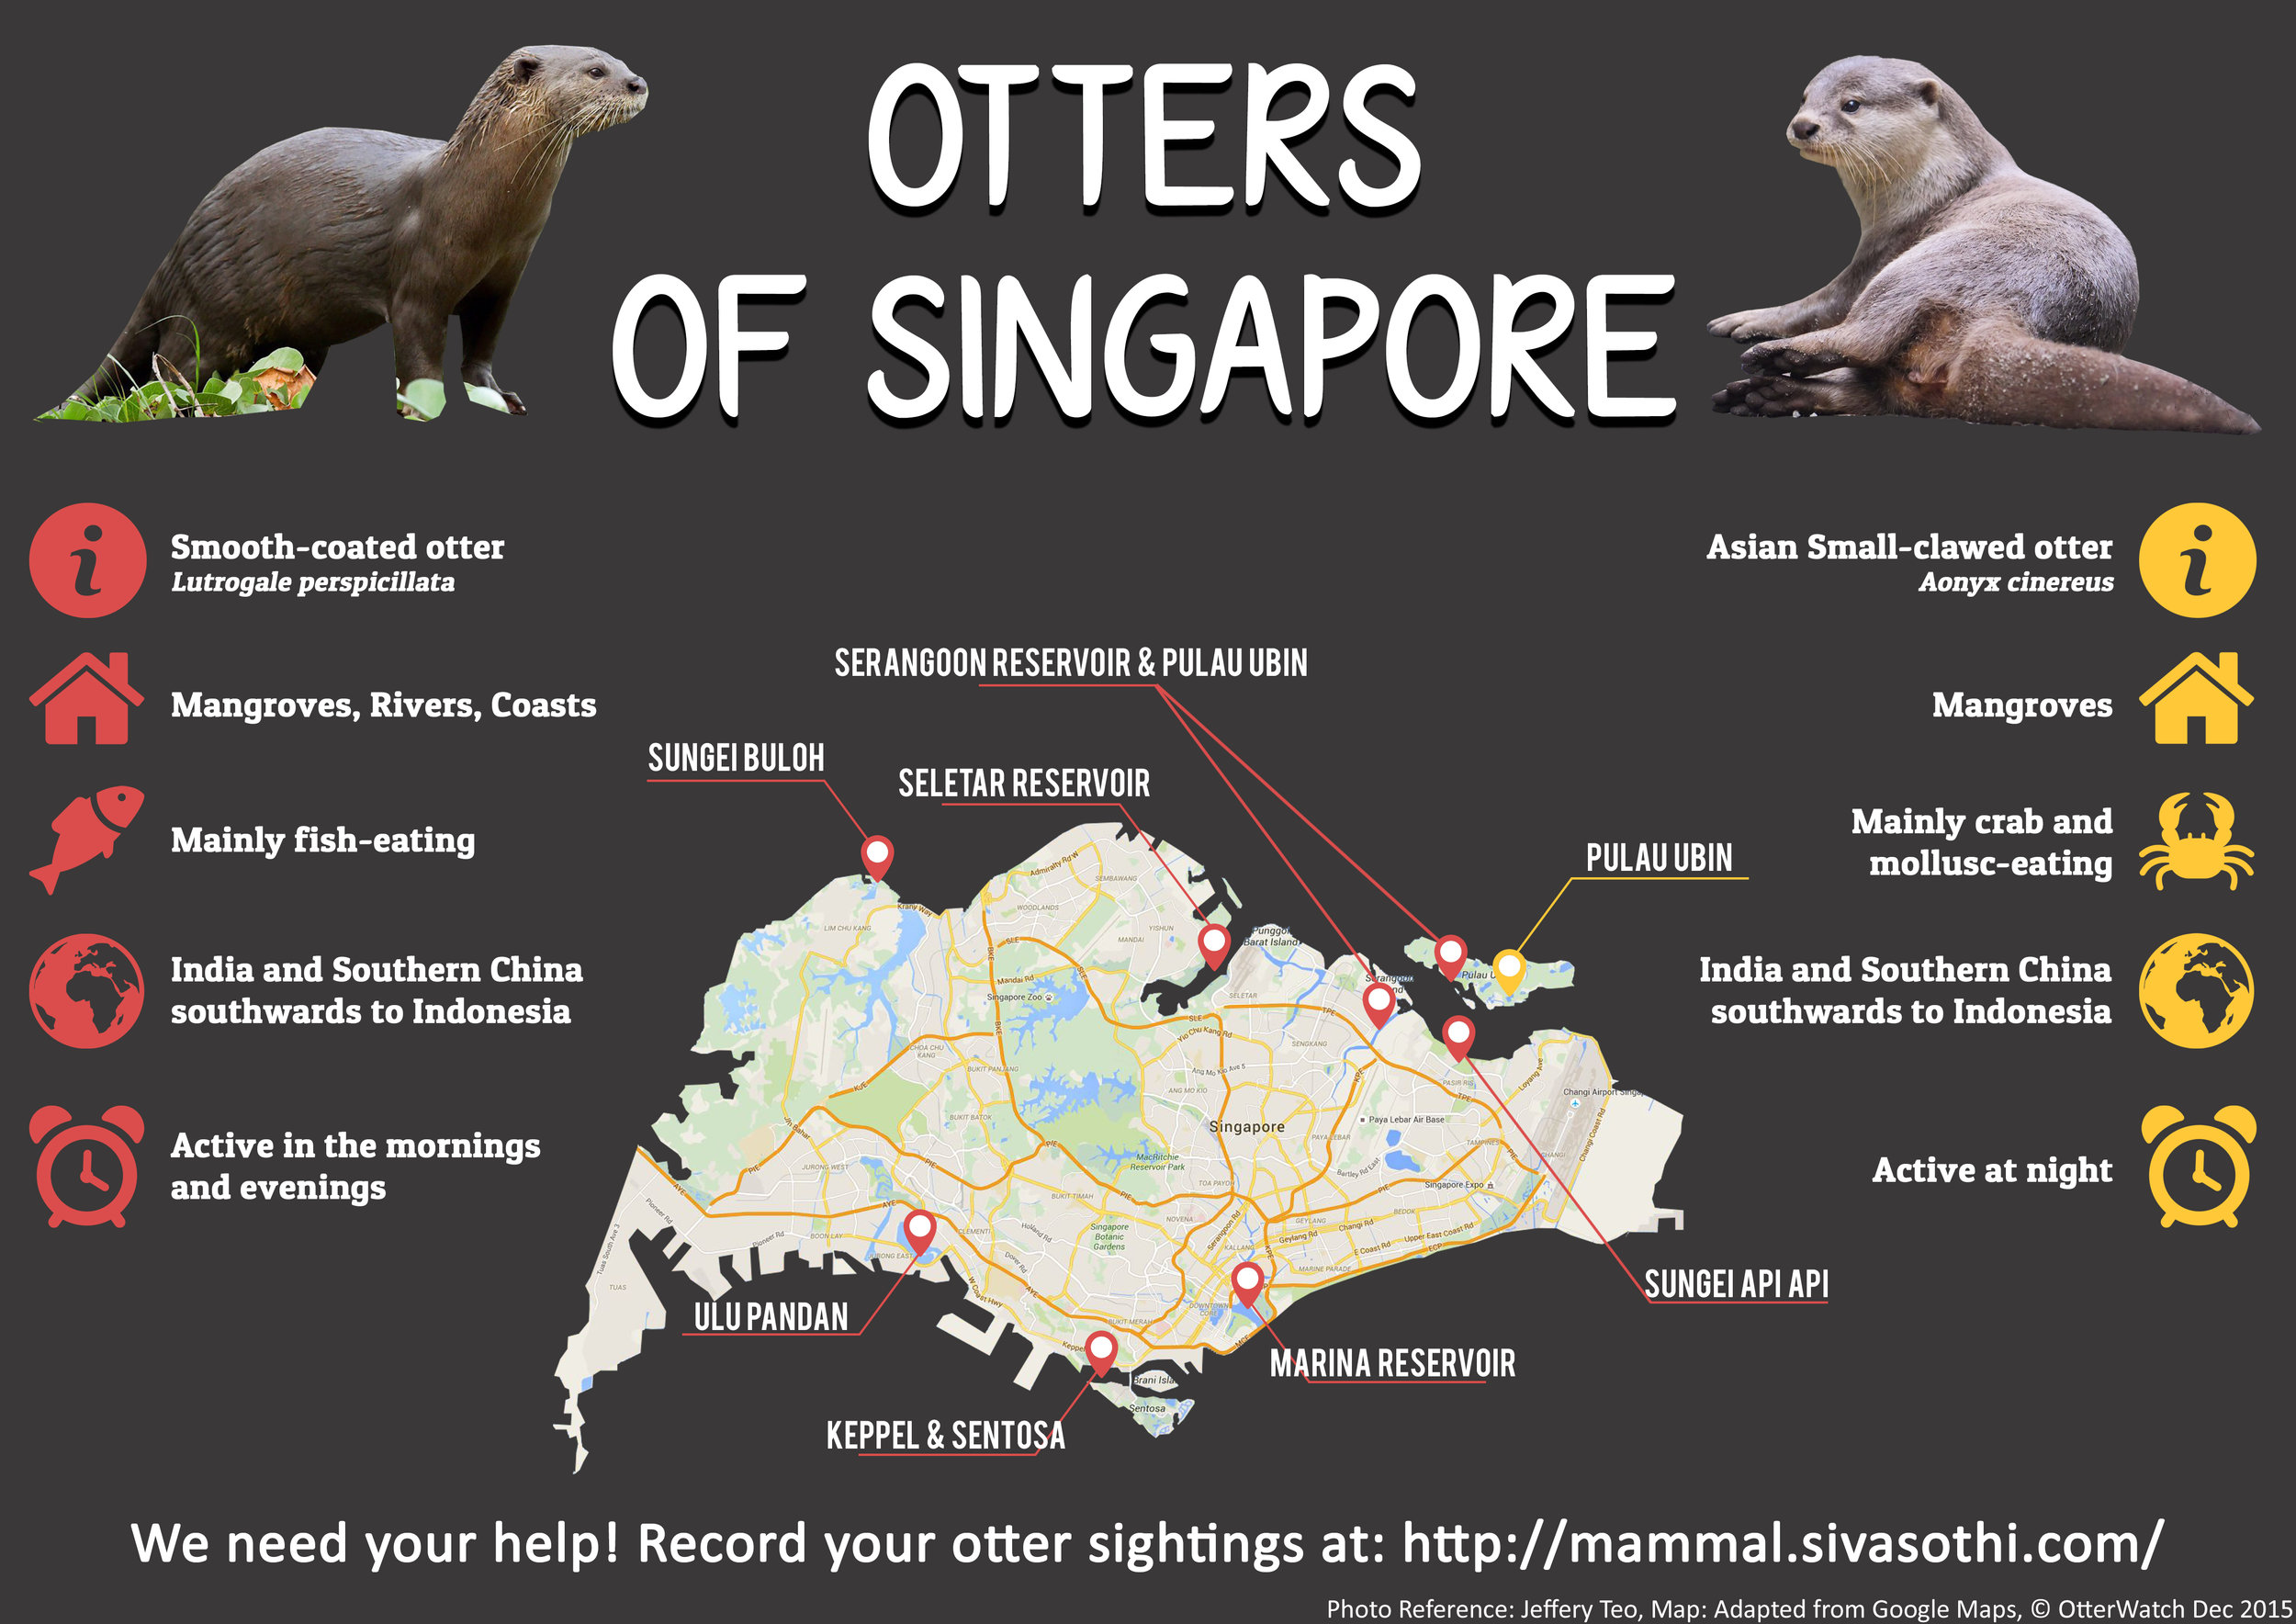 Info Graphic of the 2 Otters species to be found in Singapore